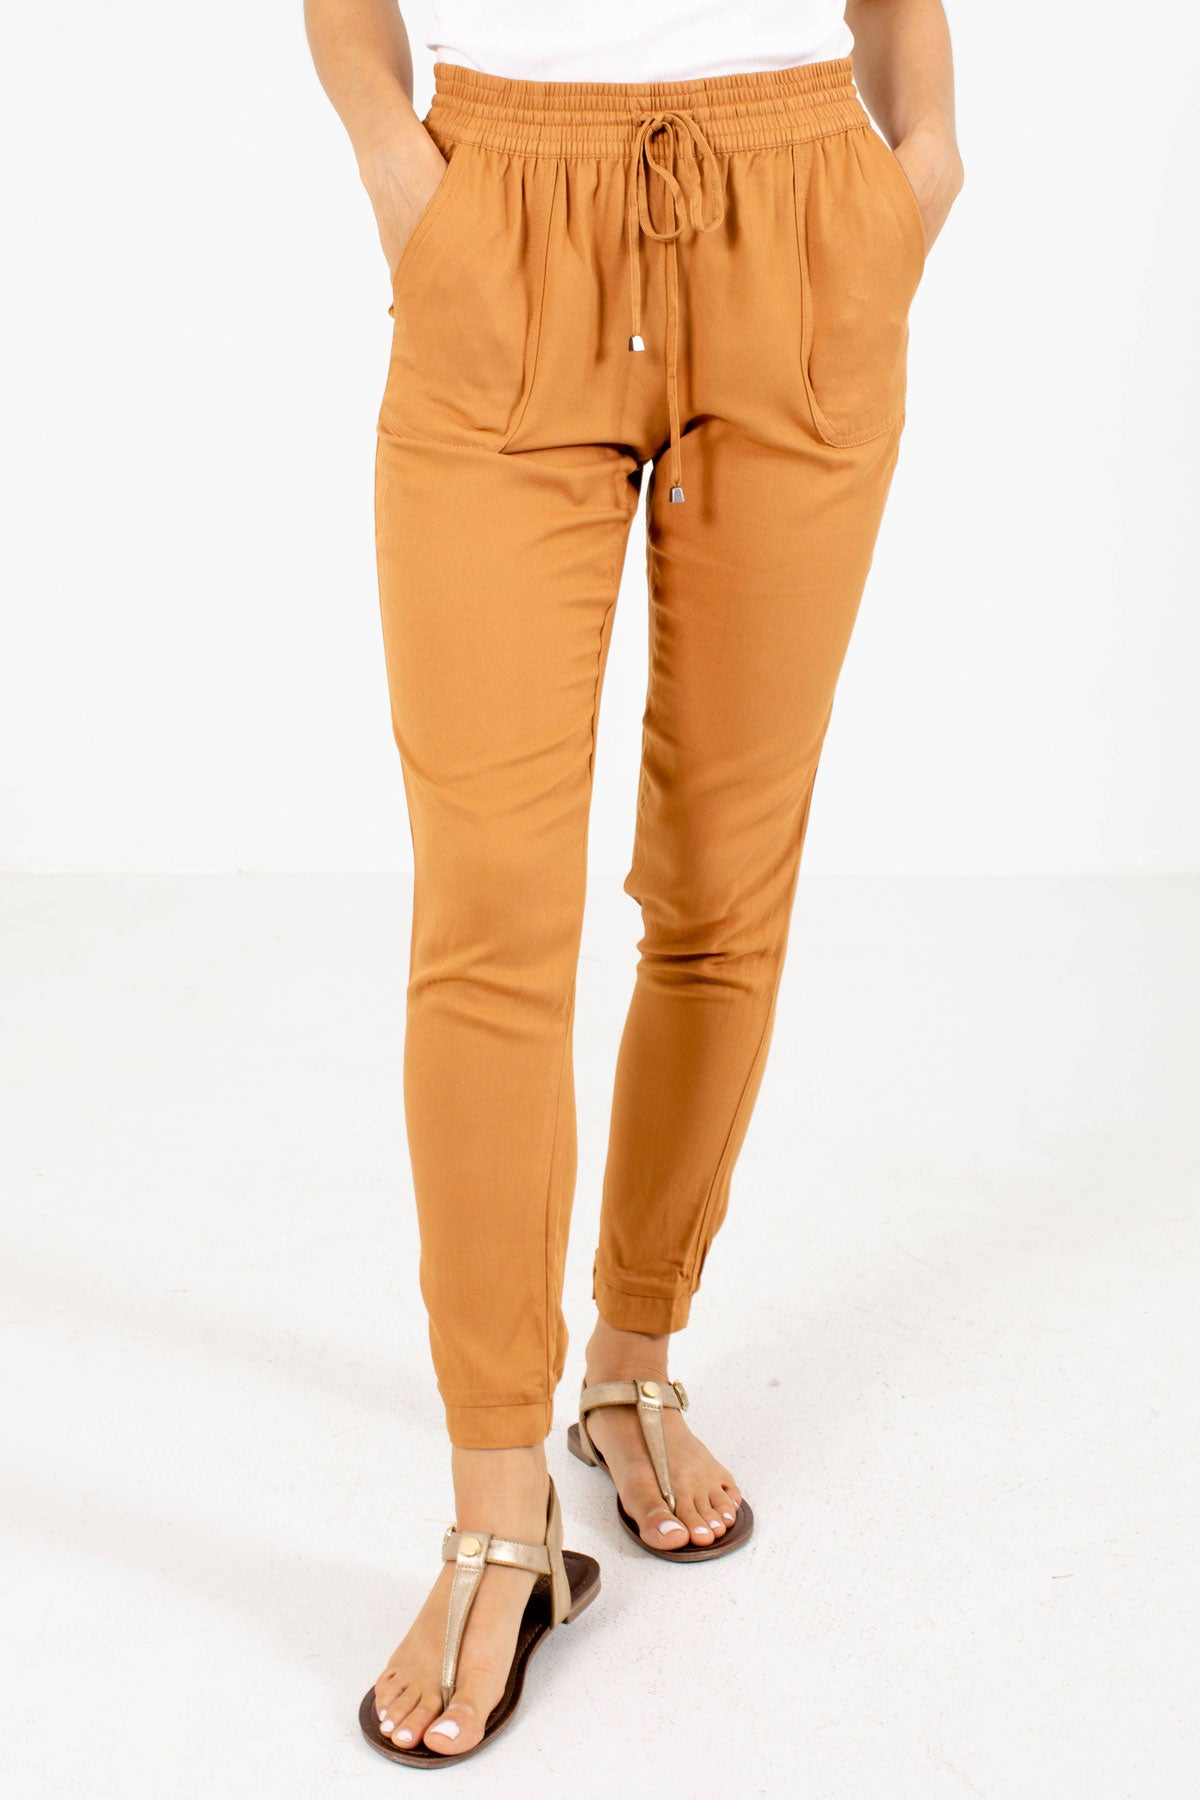 Mustard Elastic Waistband Boutique Joggers for Women